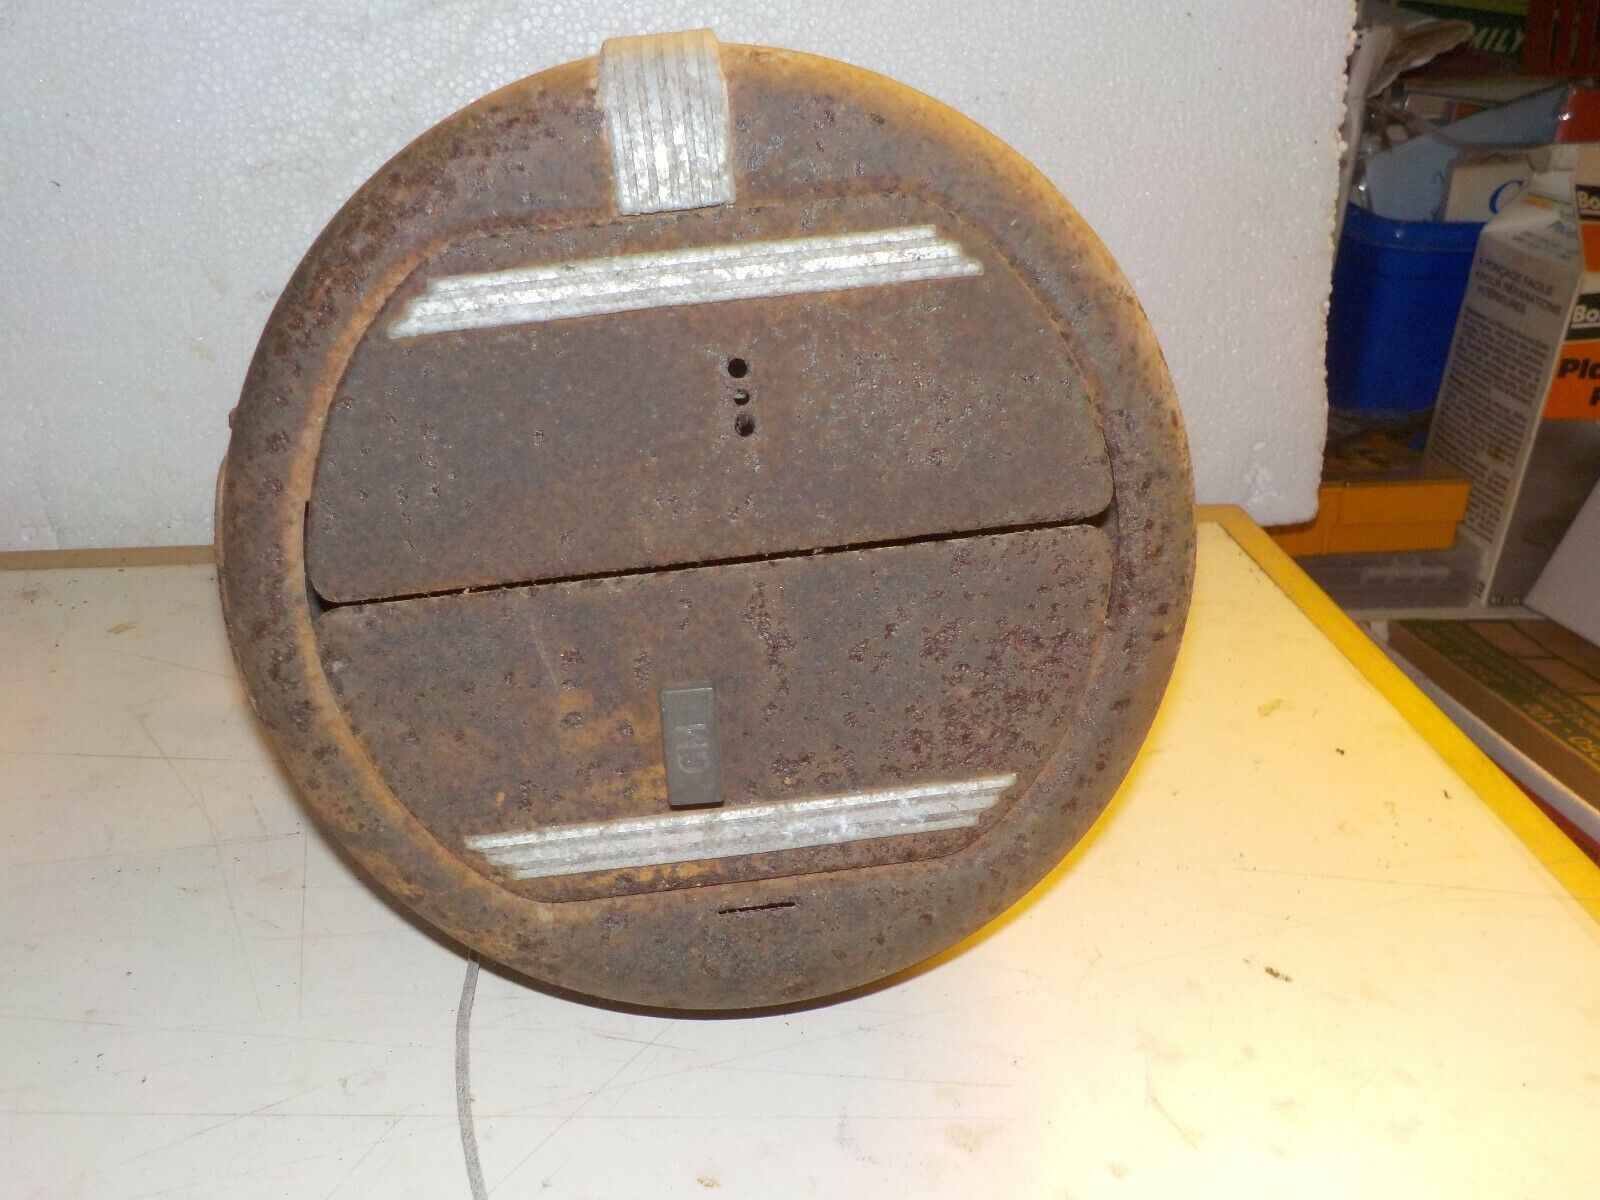 1935 1936 1937 1938 138 37 36 35 Heater GM Chevrolet Buick Oldsmobile Pontiac